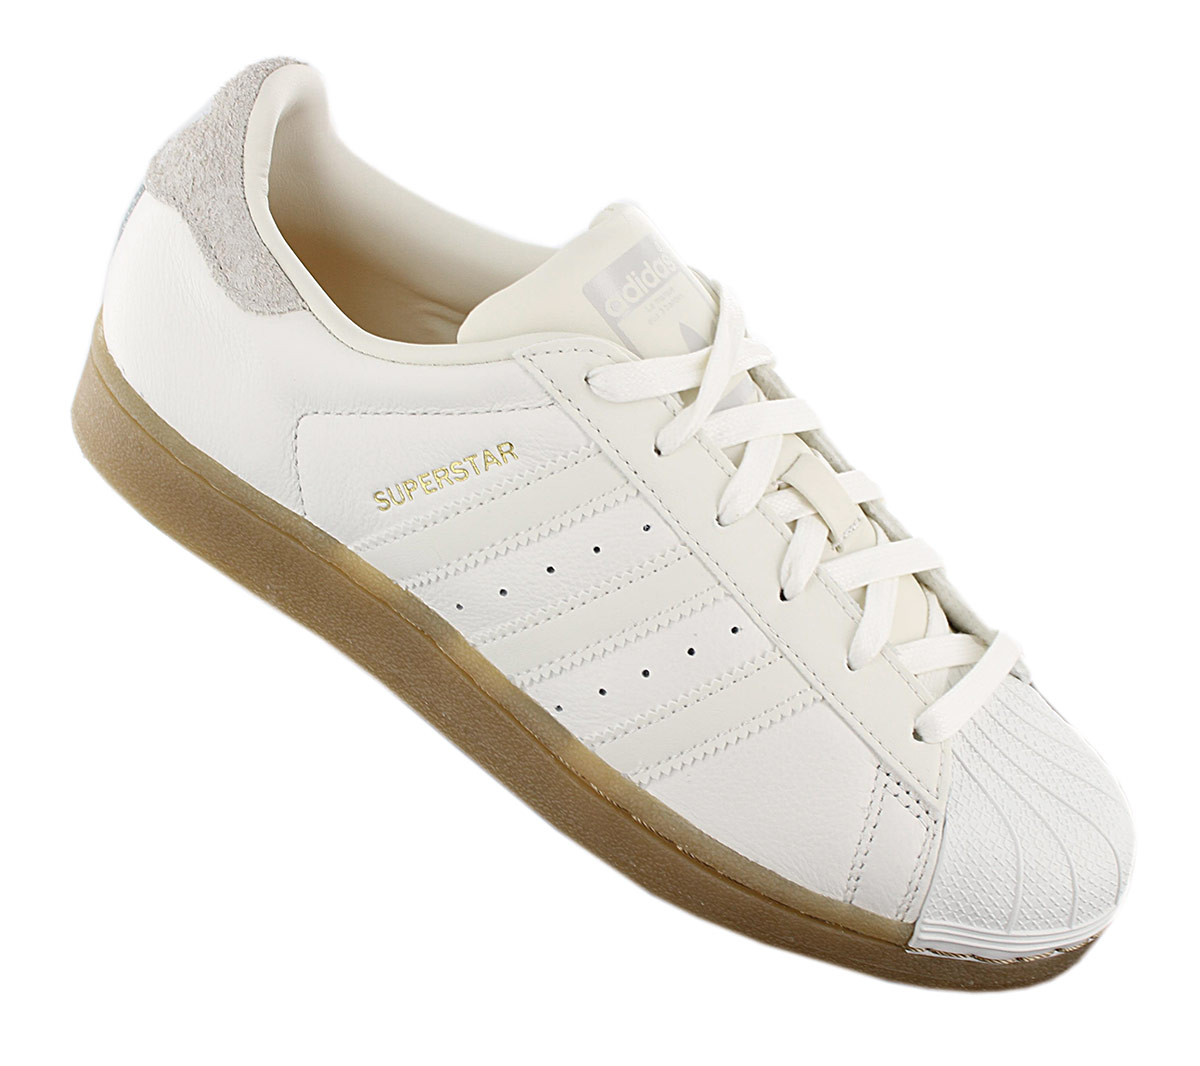 Calígrafo mal humor insertar  NEW adidas Originals Superstar W B37147 Women`s Shoes Trainers Sneakers SALE  | eBay